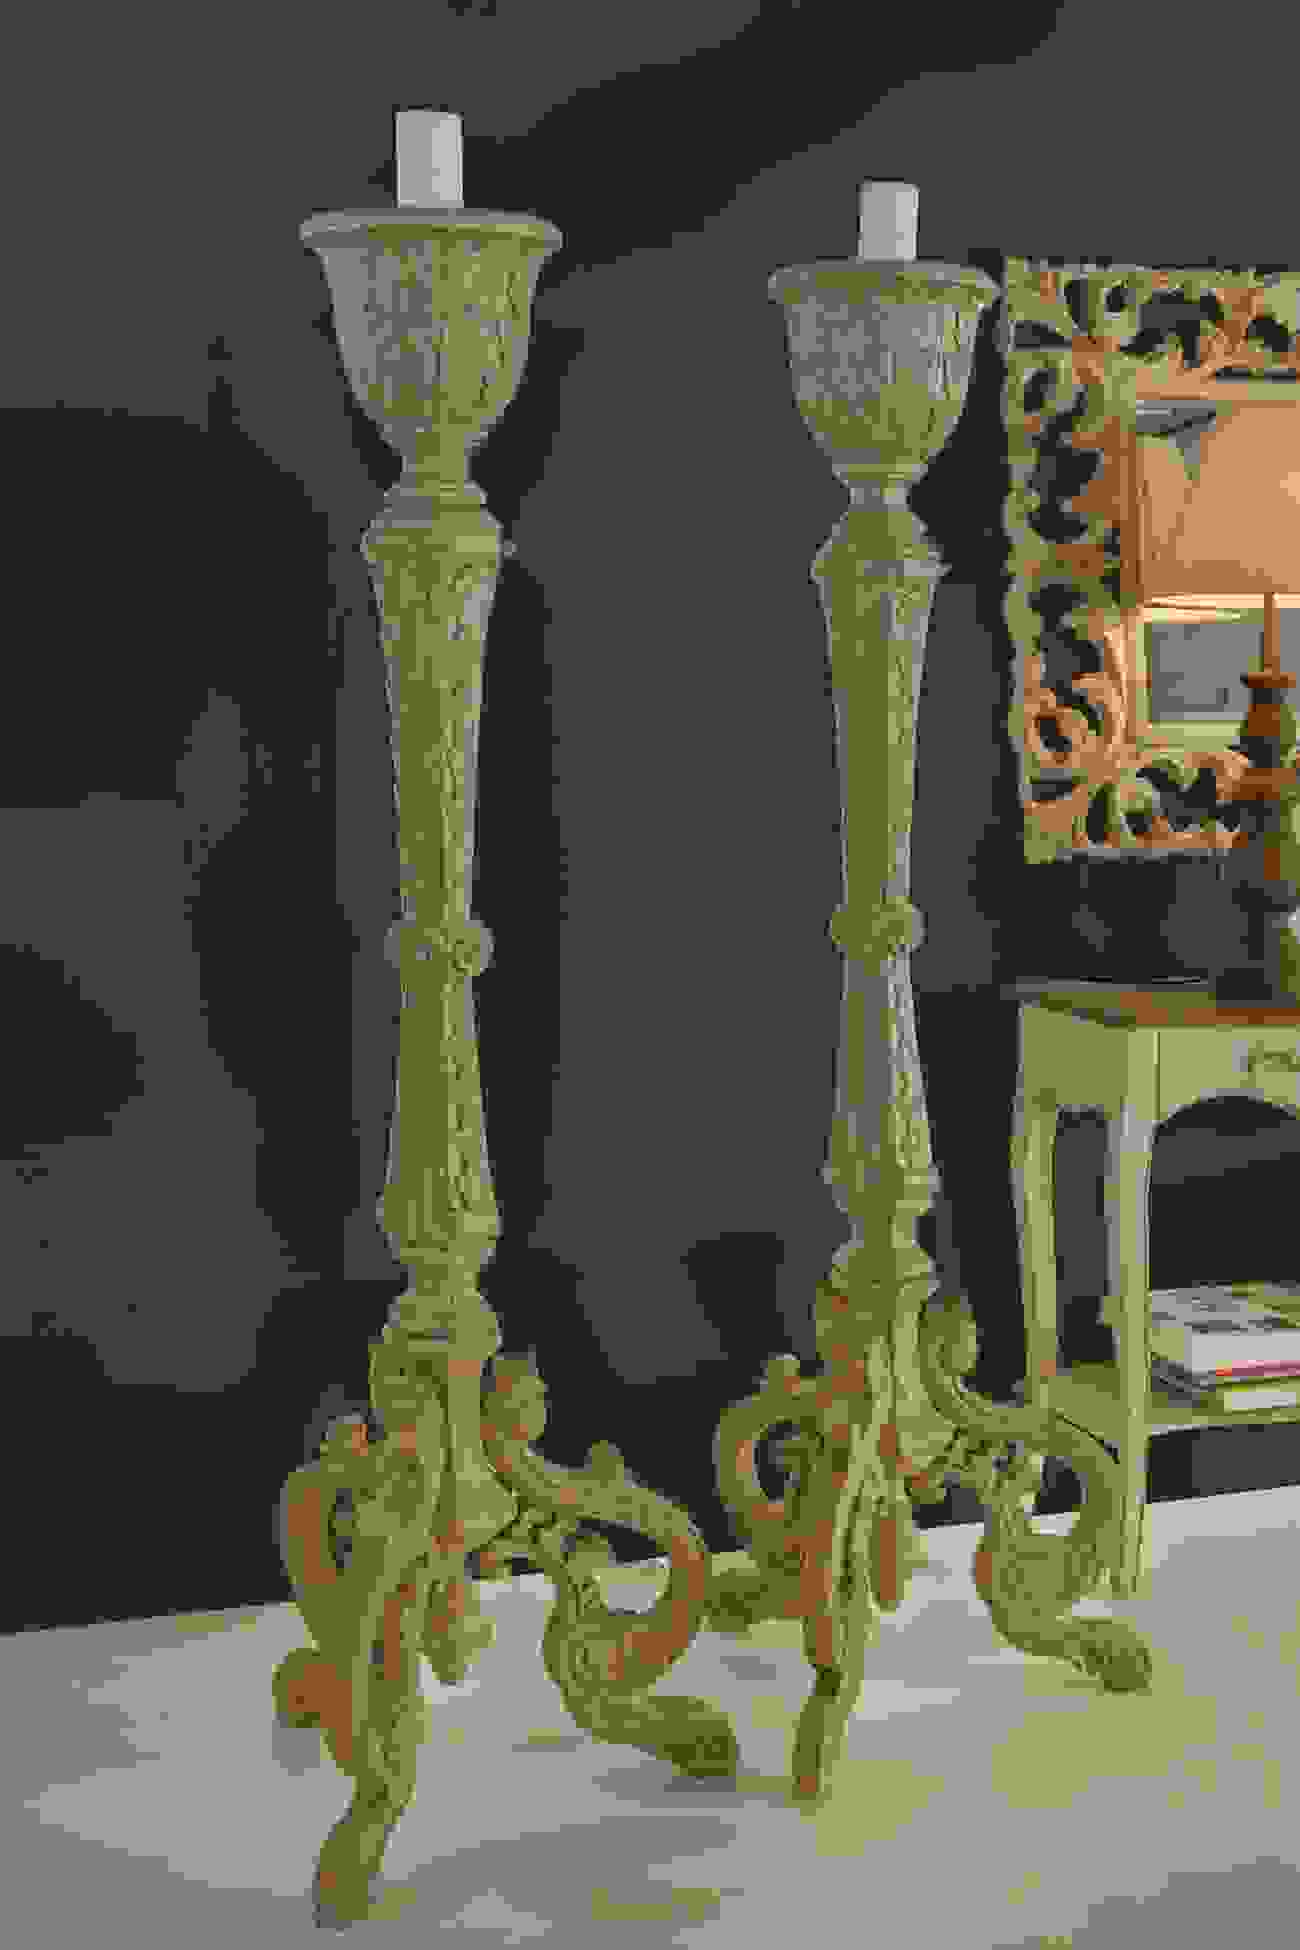 contradictions-coleccion-secrets-candelabros-altos.jpg